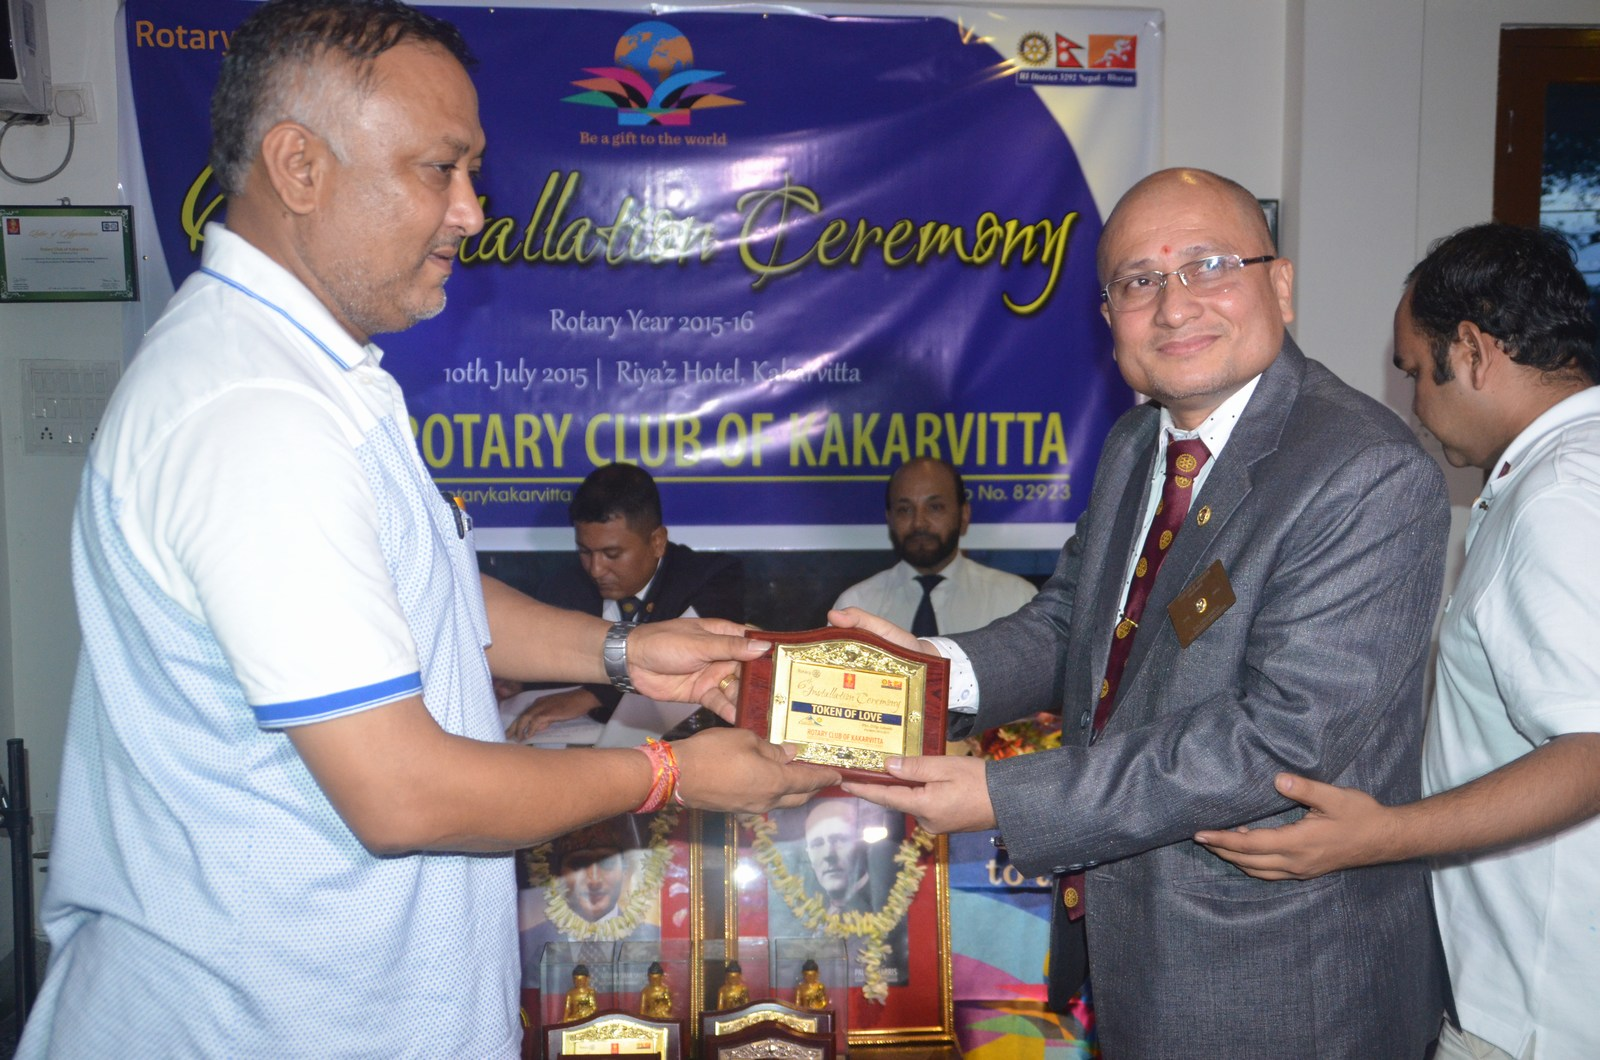 6th Installation Ceremony 2015 16 Rotary Club Of Kakarvitta 15